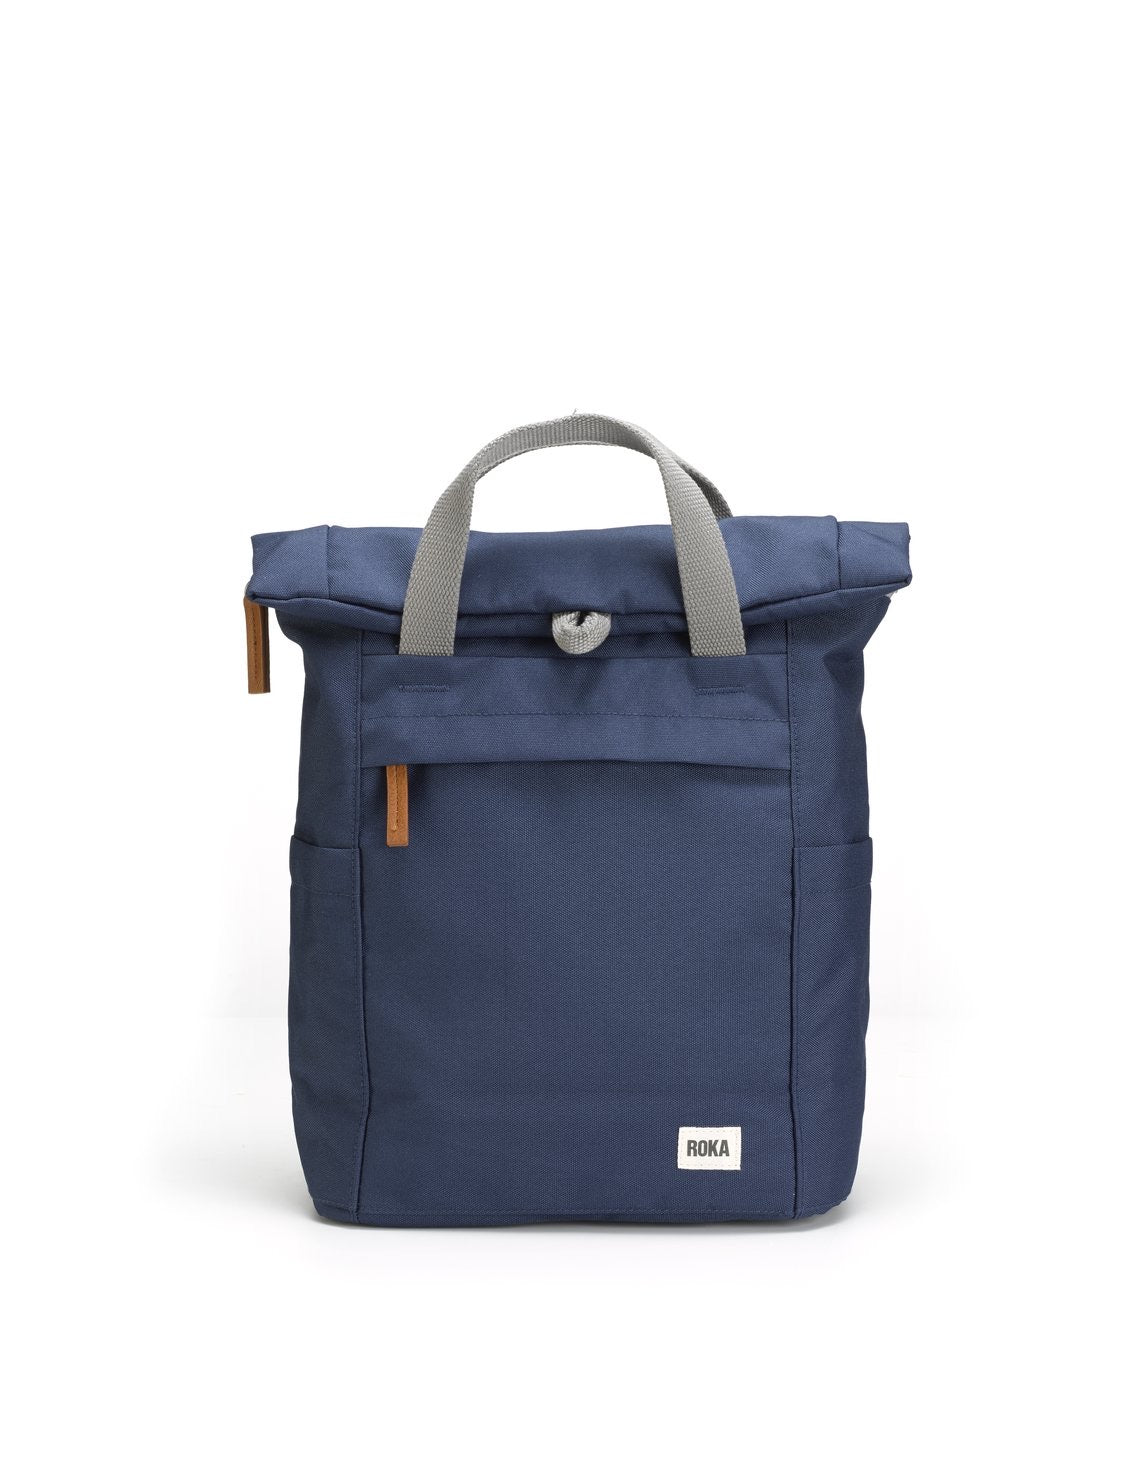 Finchley A Medium Sustainable Rucksack in Mineral